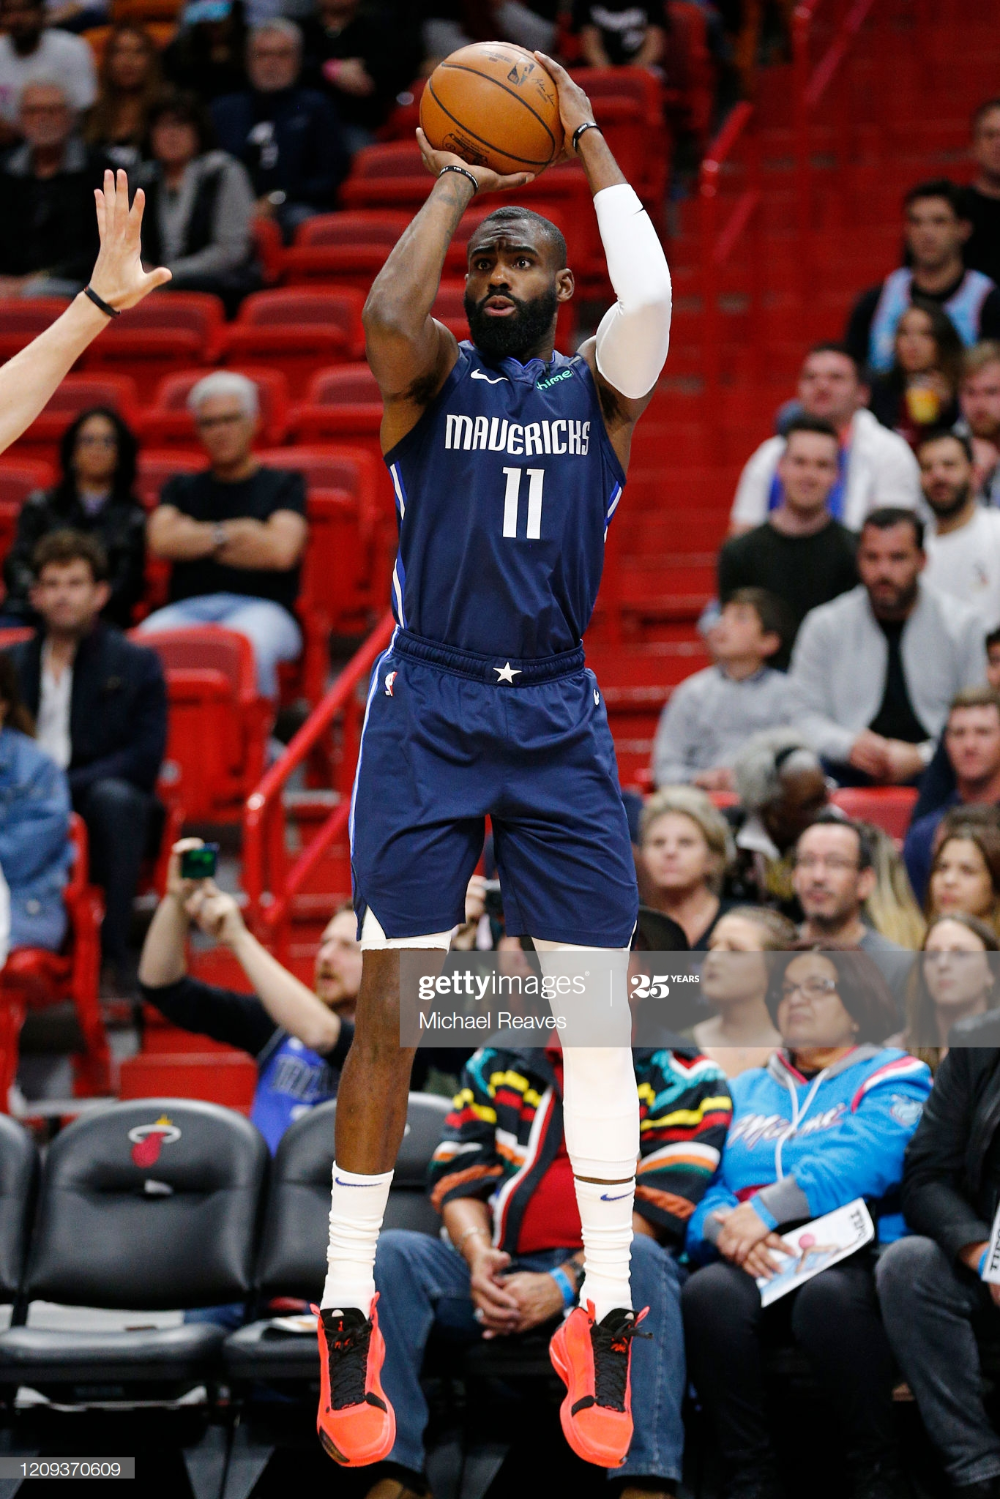 Tim Hardaway Jr. 11 of the Dallas Mavericks shoots a